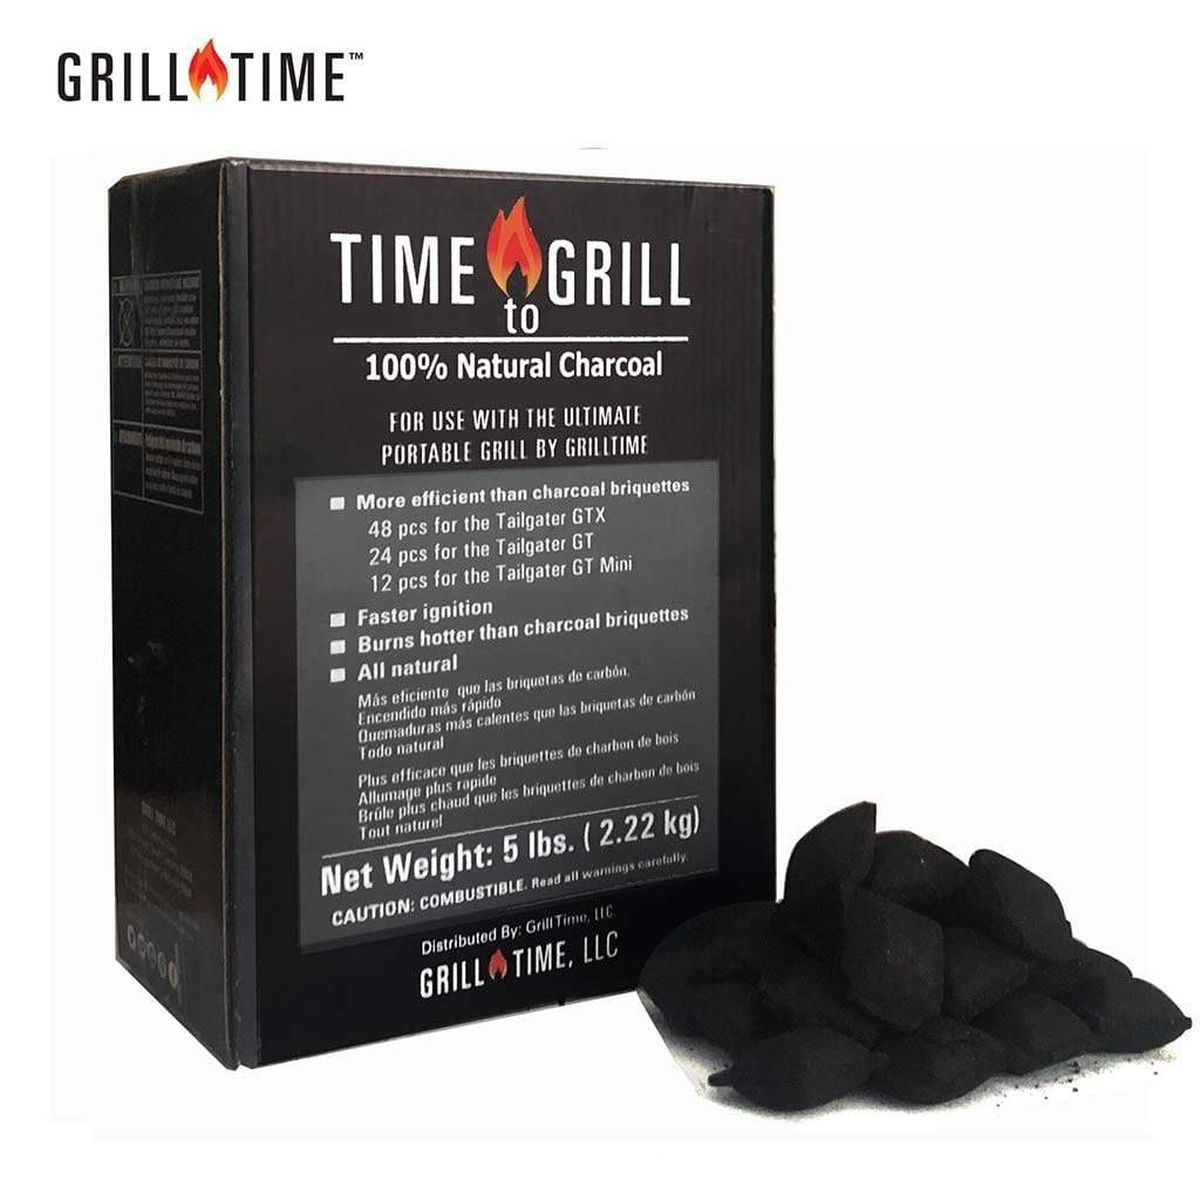 Grill Time 5lbs Time to Grill Natural Wood Charcoal